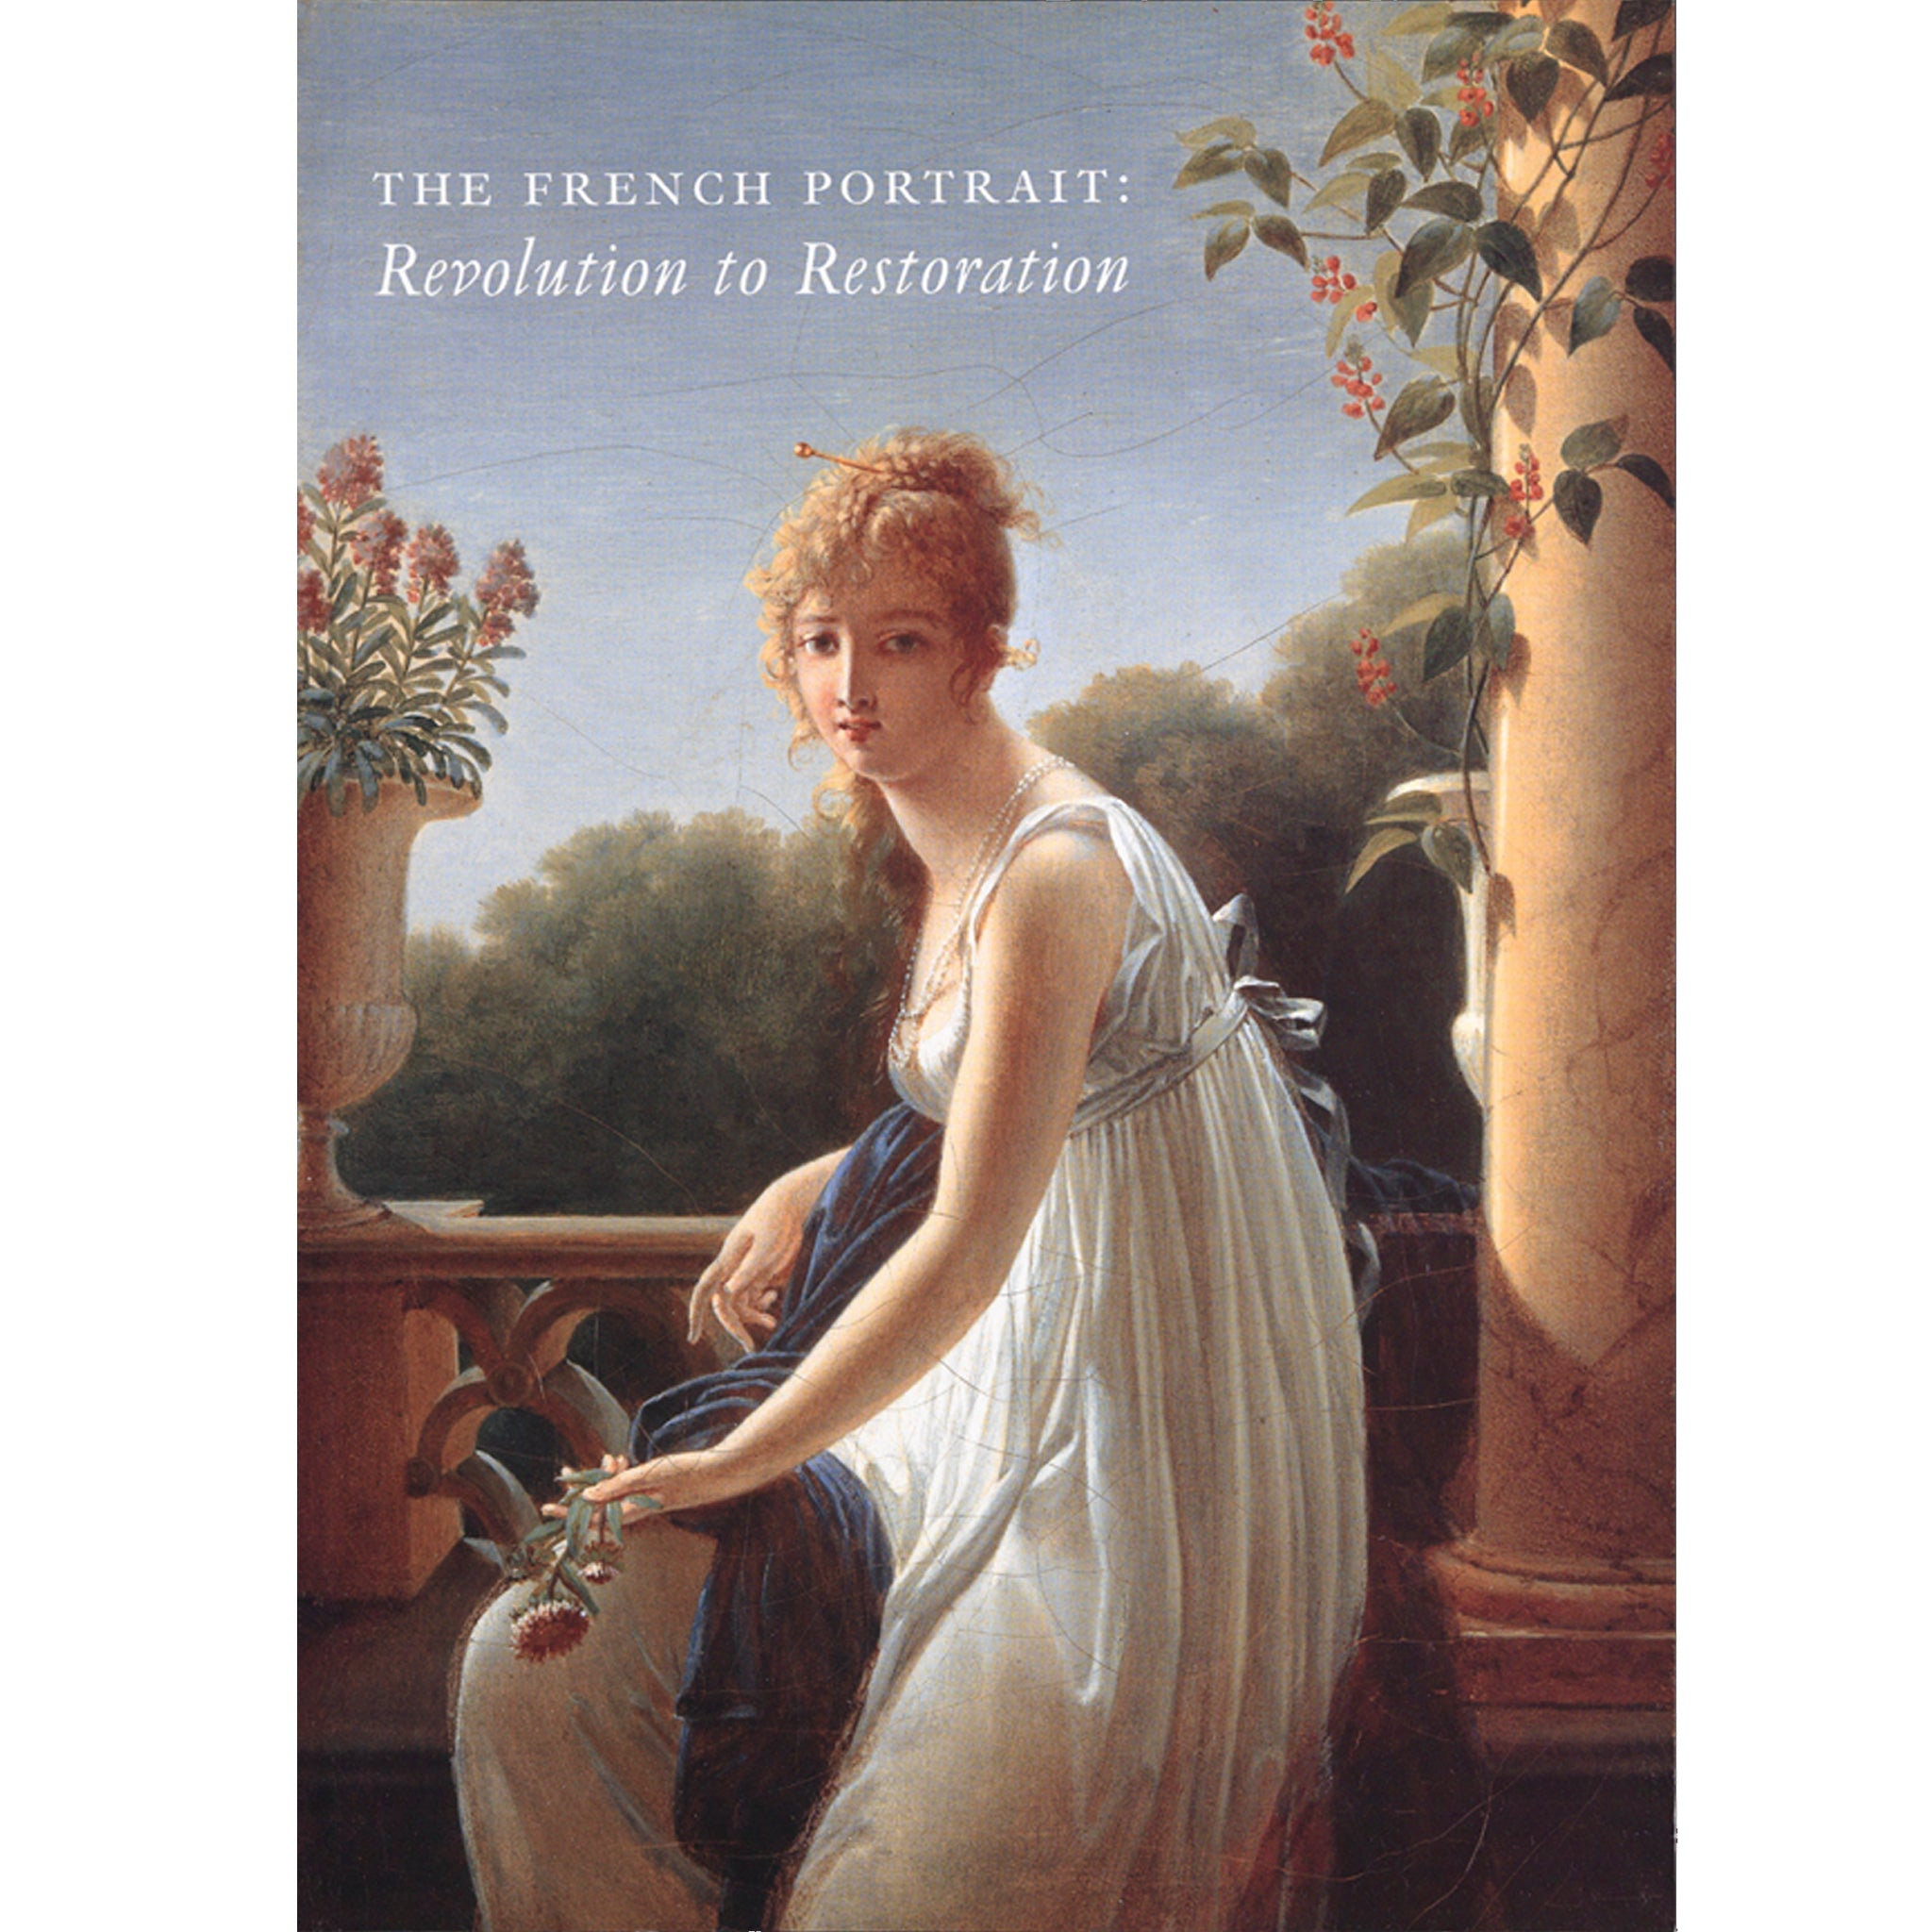 French revolution restoration paintings, drawings, sculptures, miniatures collection exhibit catalog exhibition catalogue scma smith college museum of art